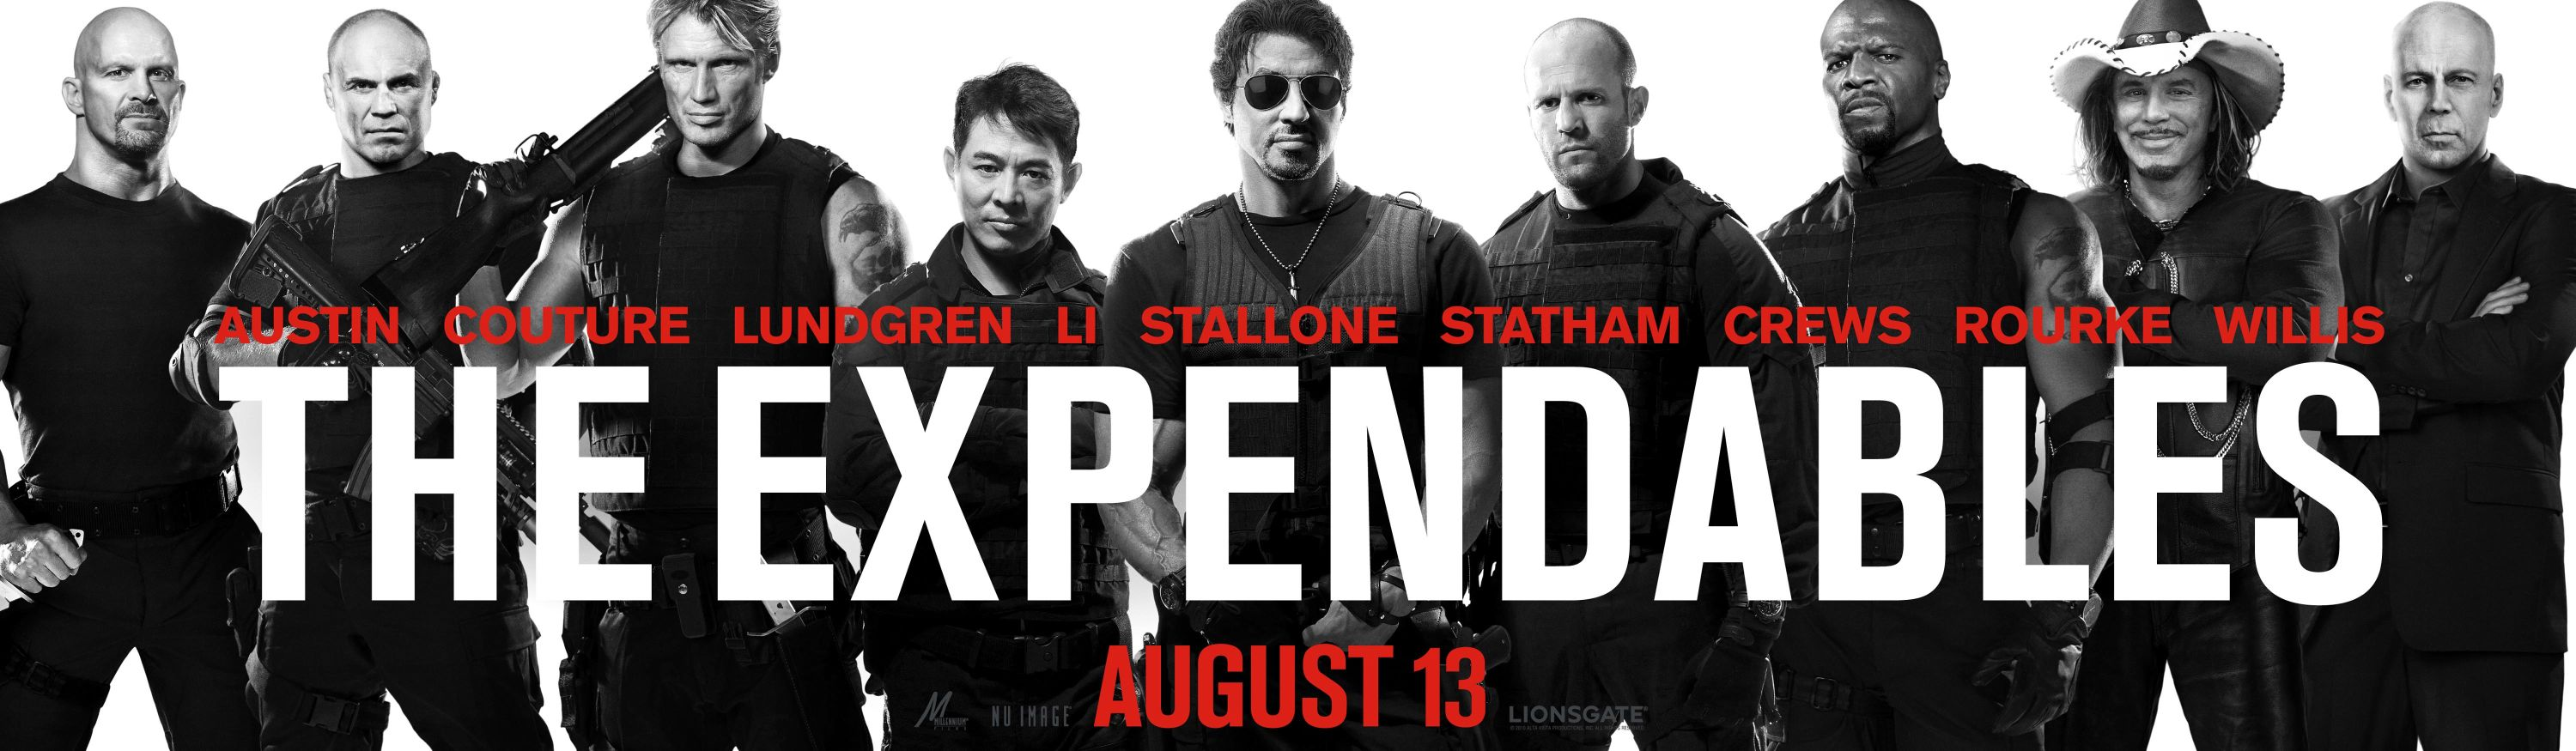 expendables1